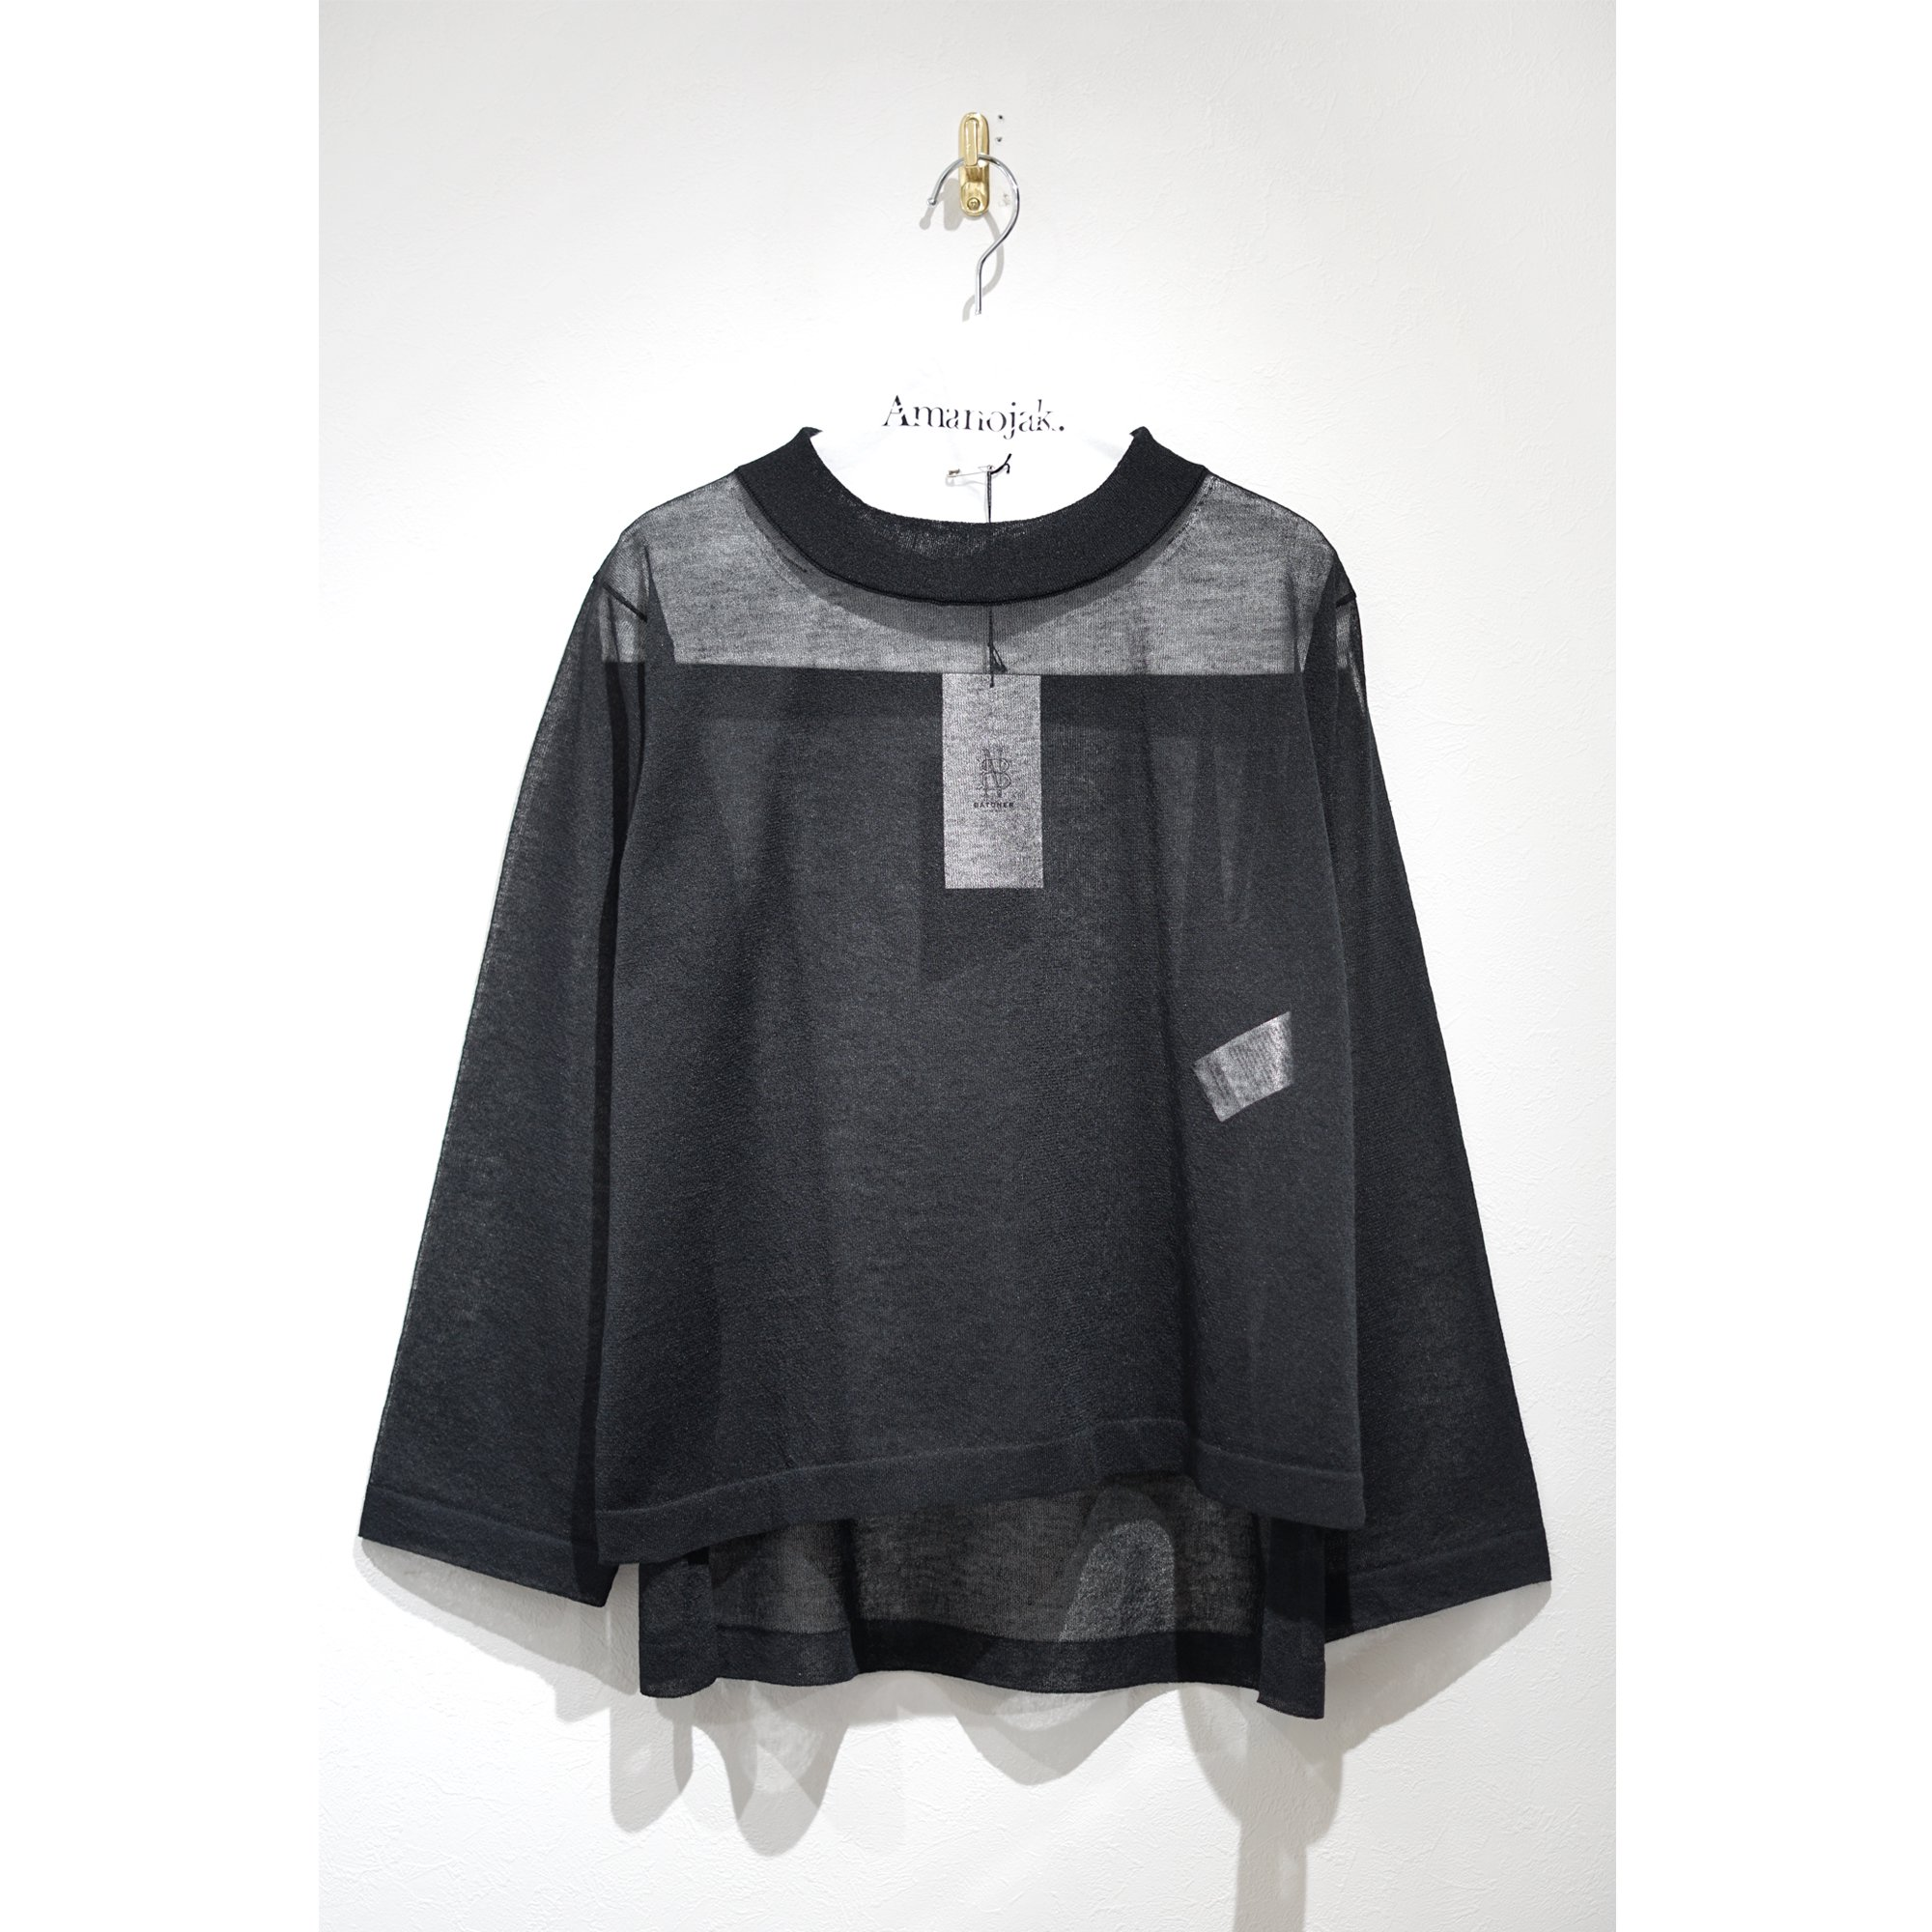 BATONER-SEE THROUGH CREW NECK BLACK